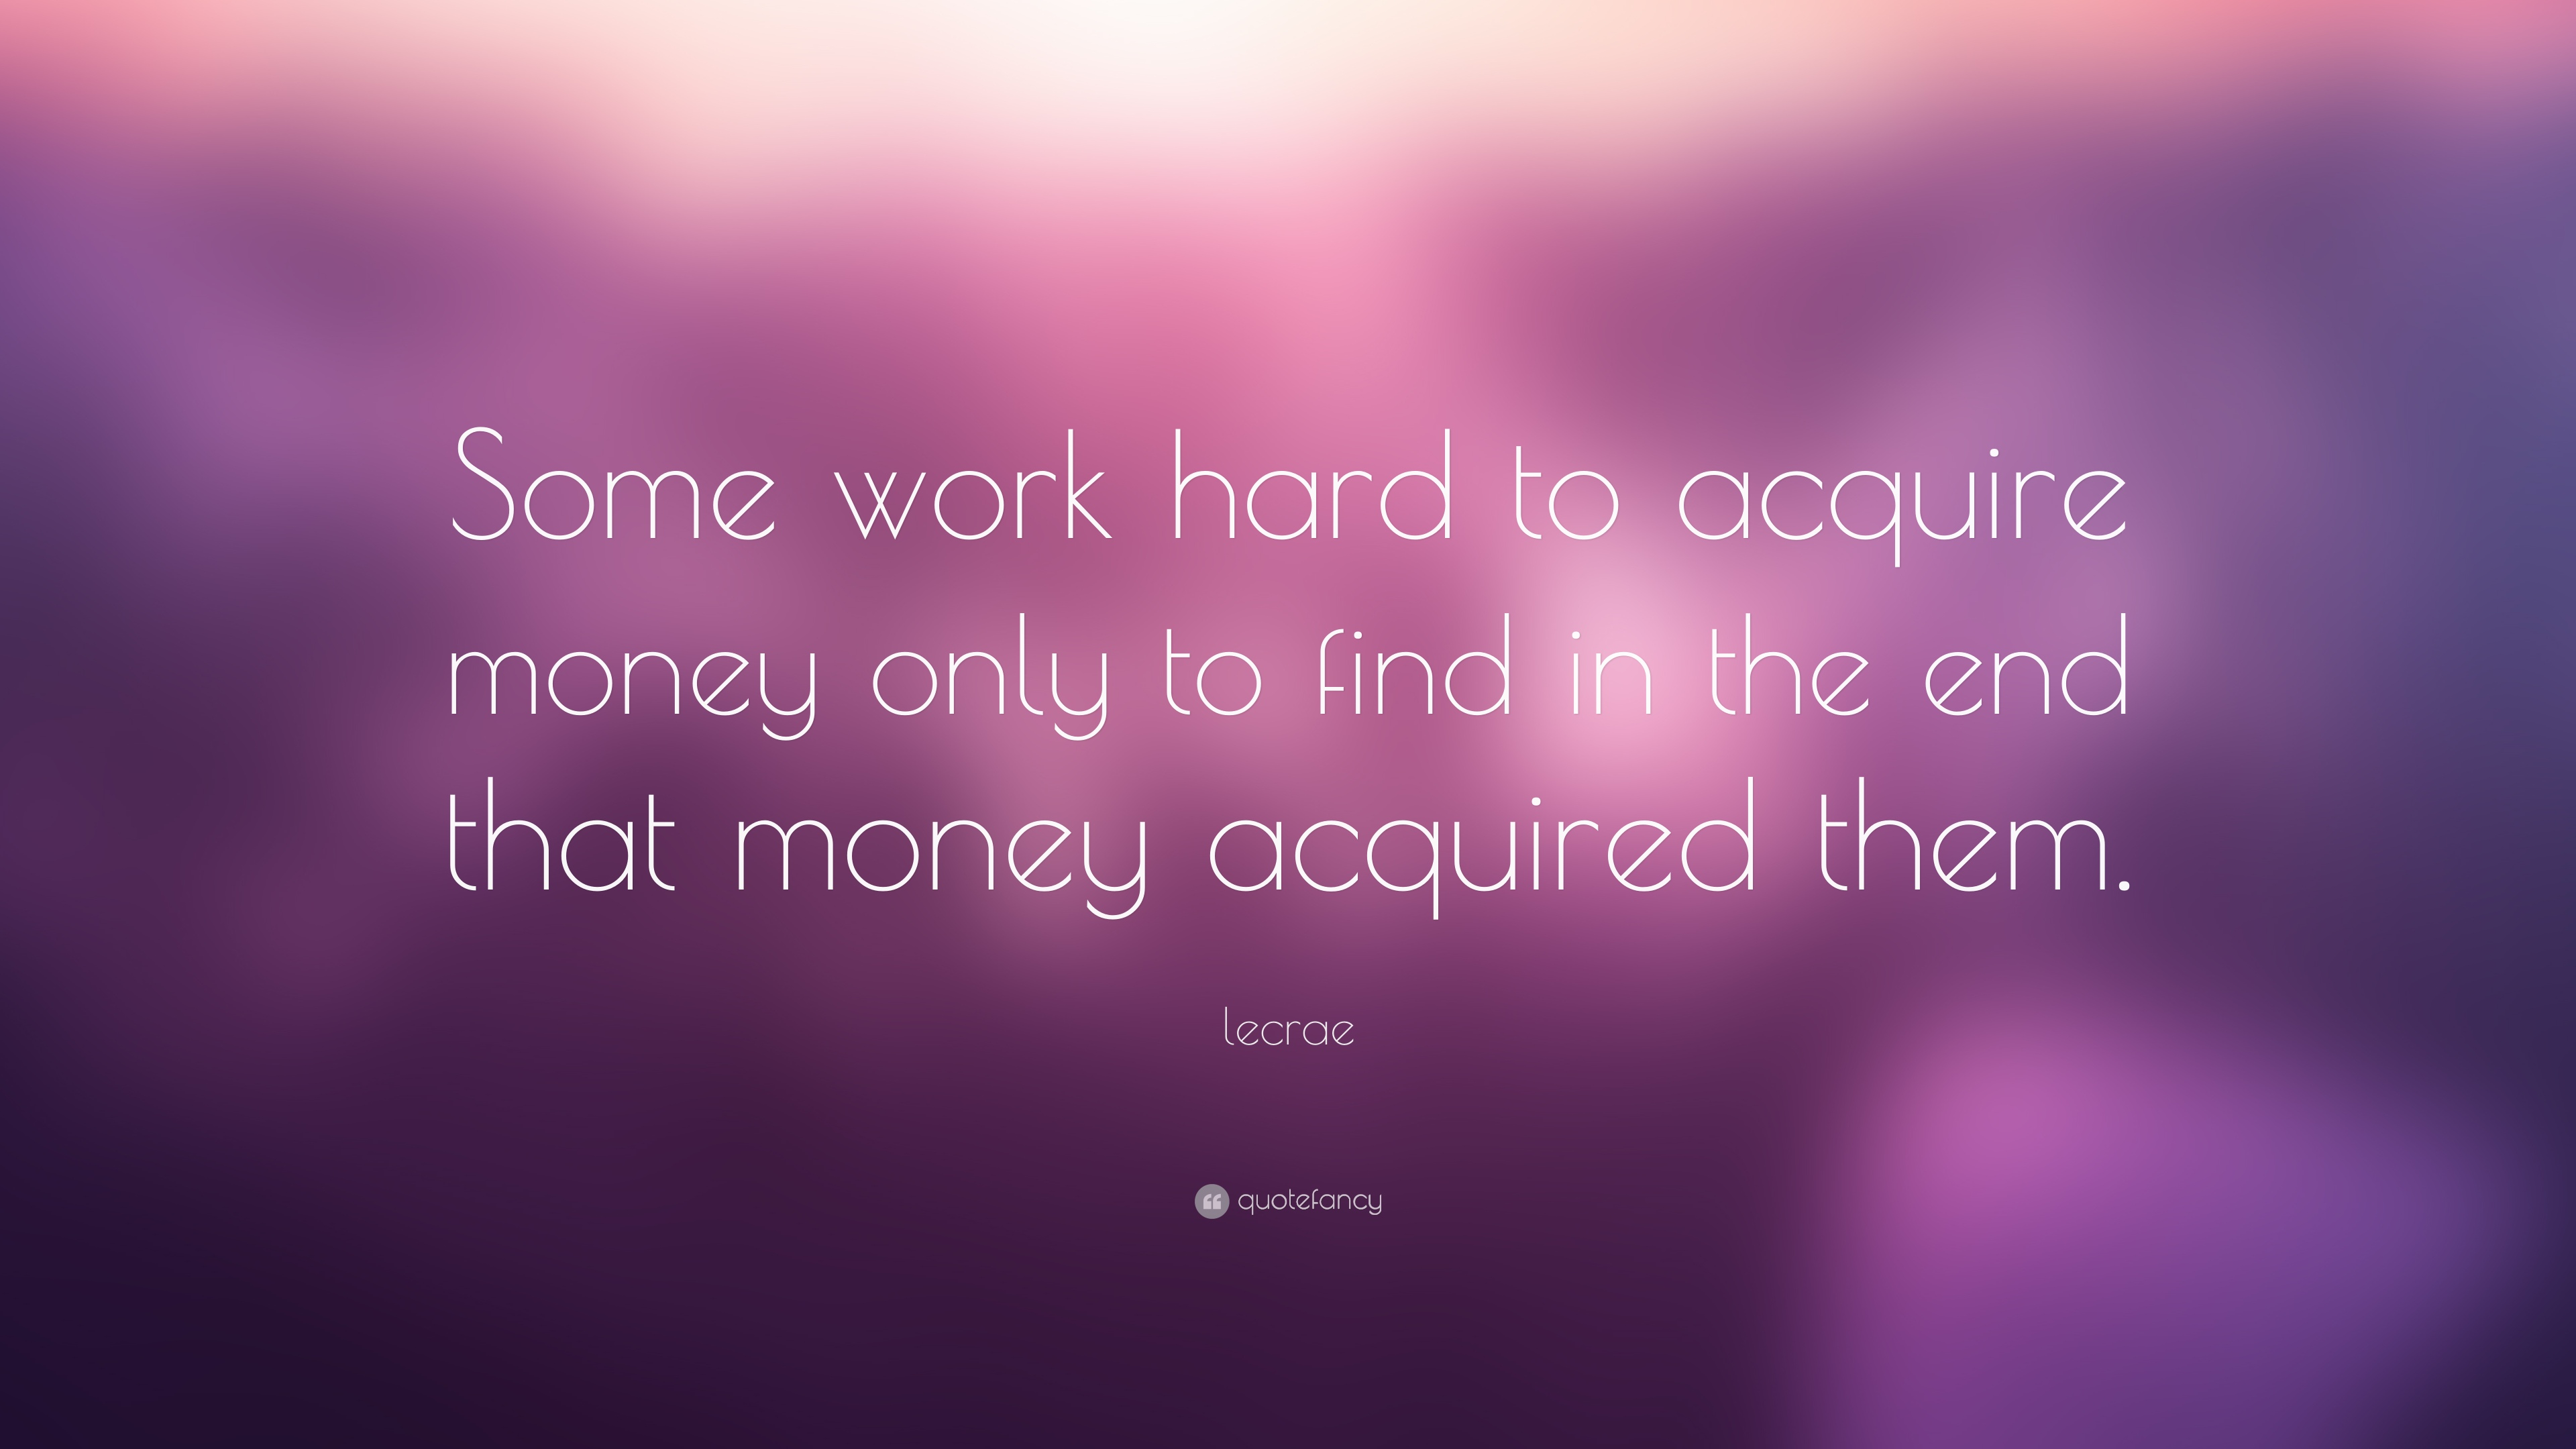 lecrae quote some work hard to acquire money only to in the lecrae quote some work hard to acquire money only to in the end